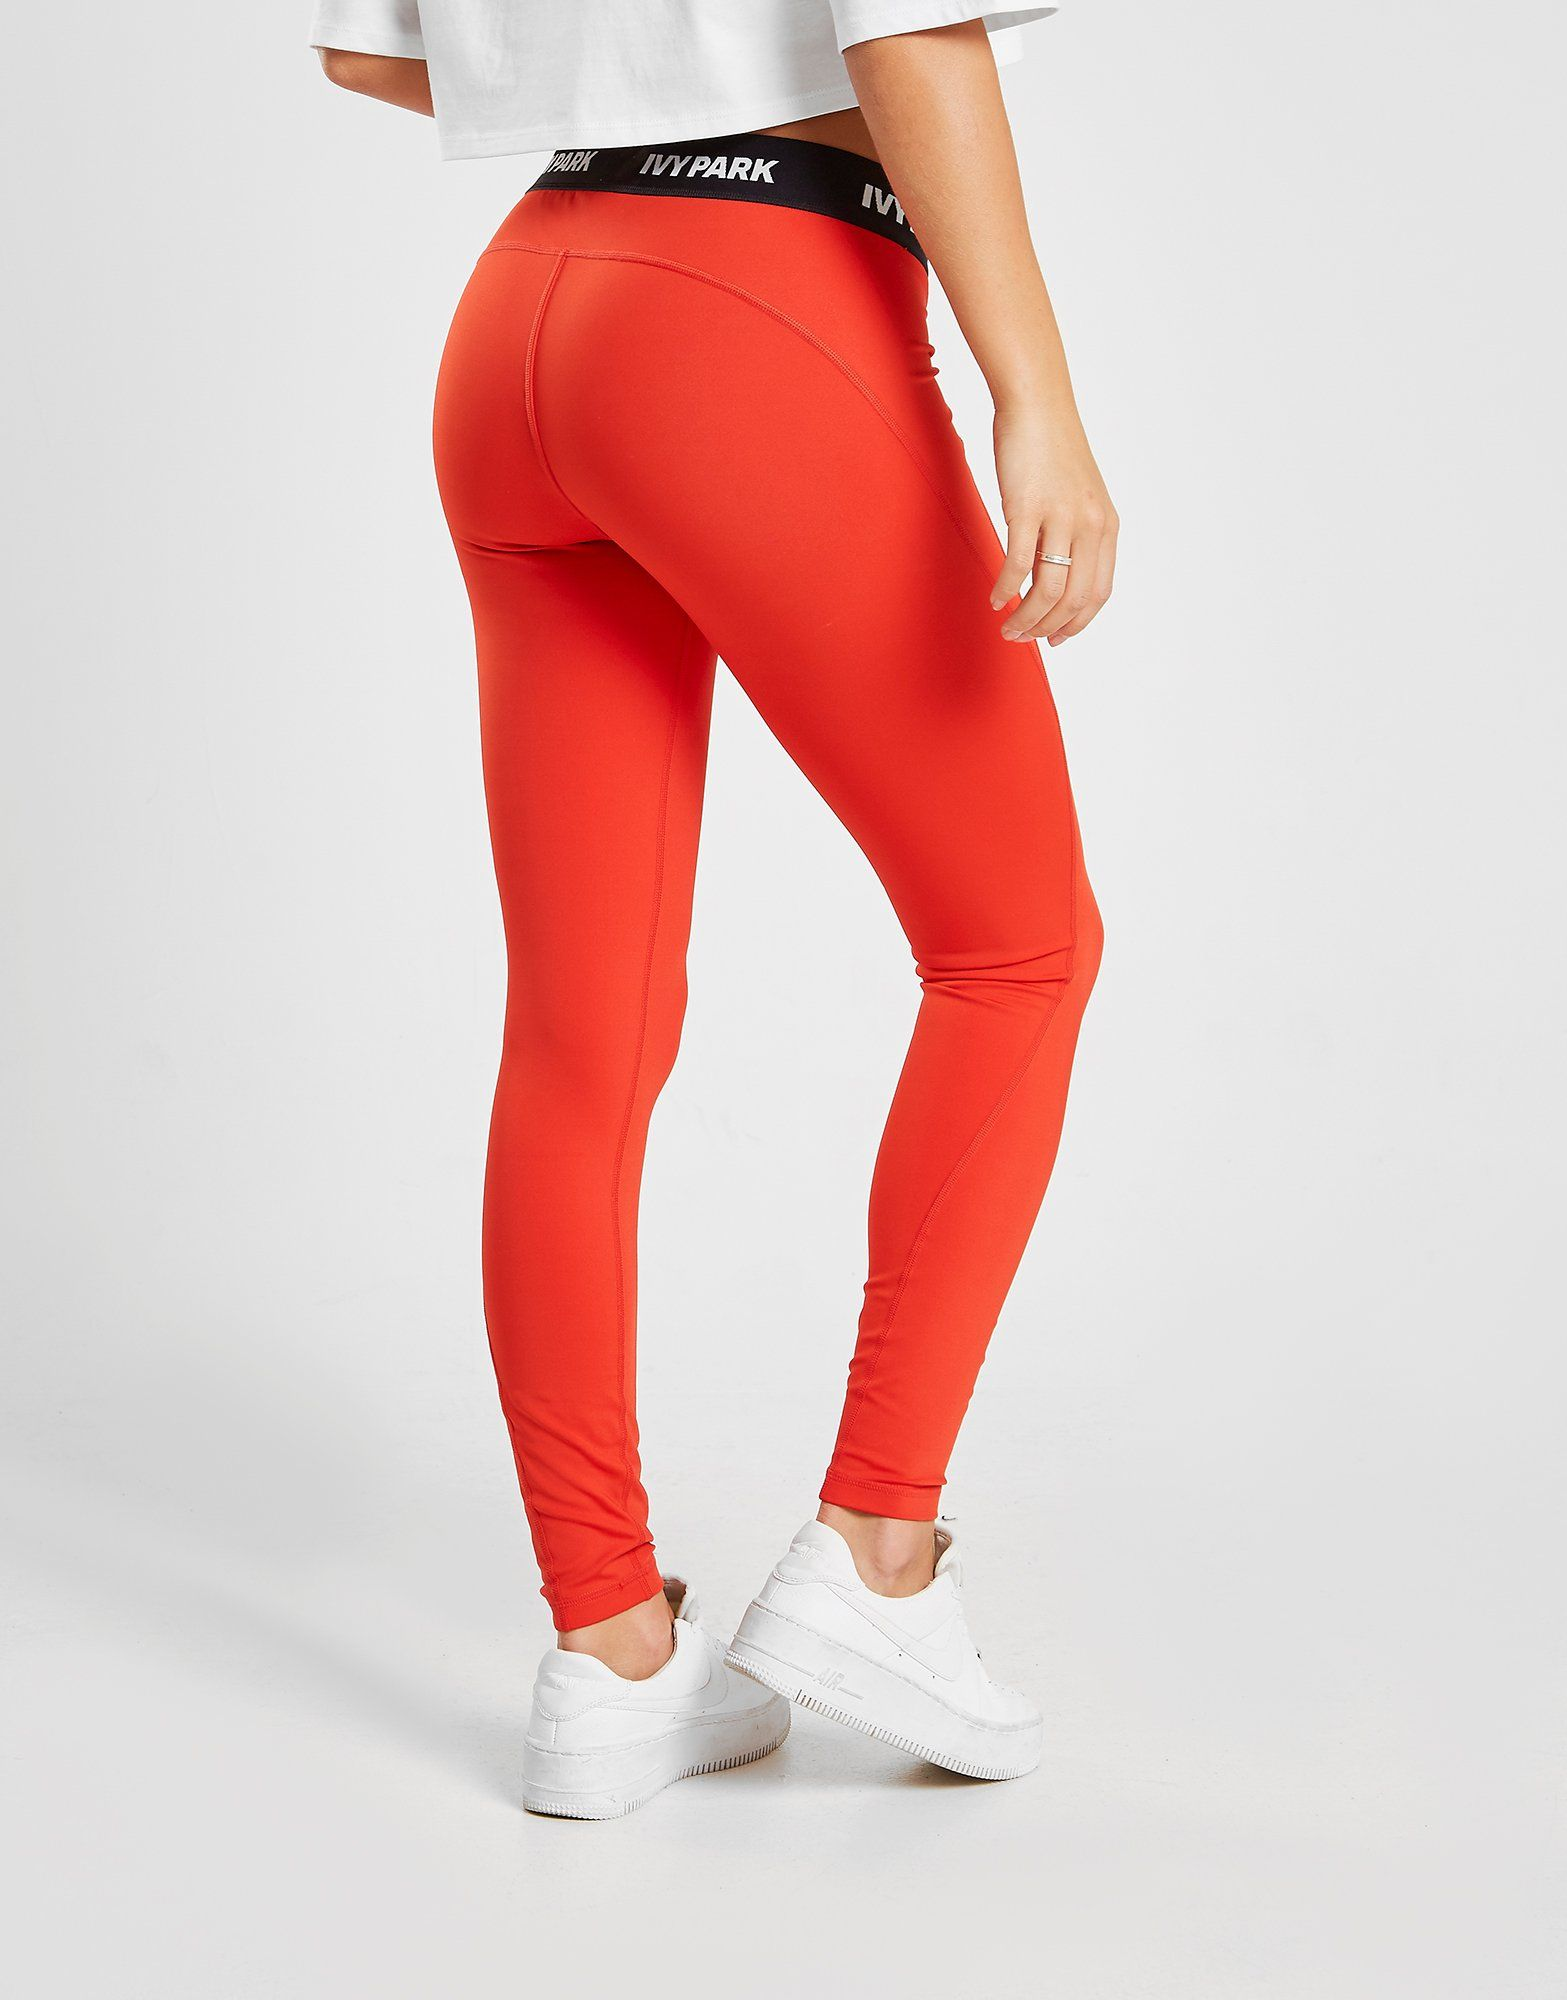 IVY PARK Logo Leggings